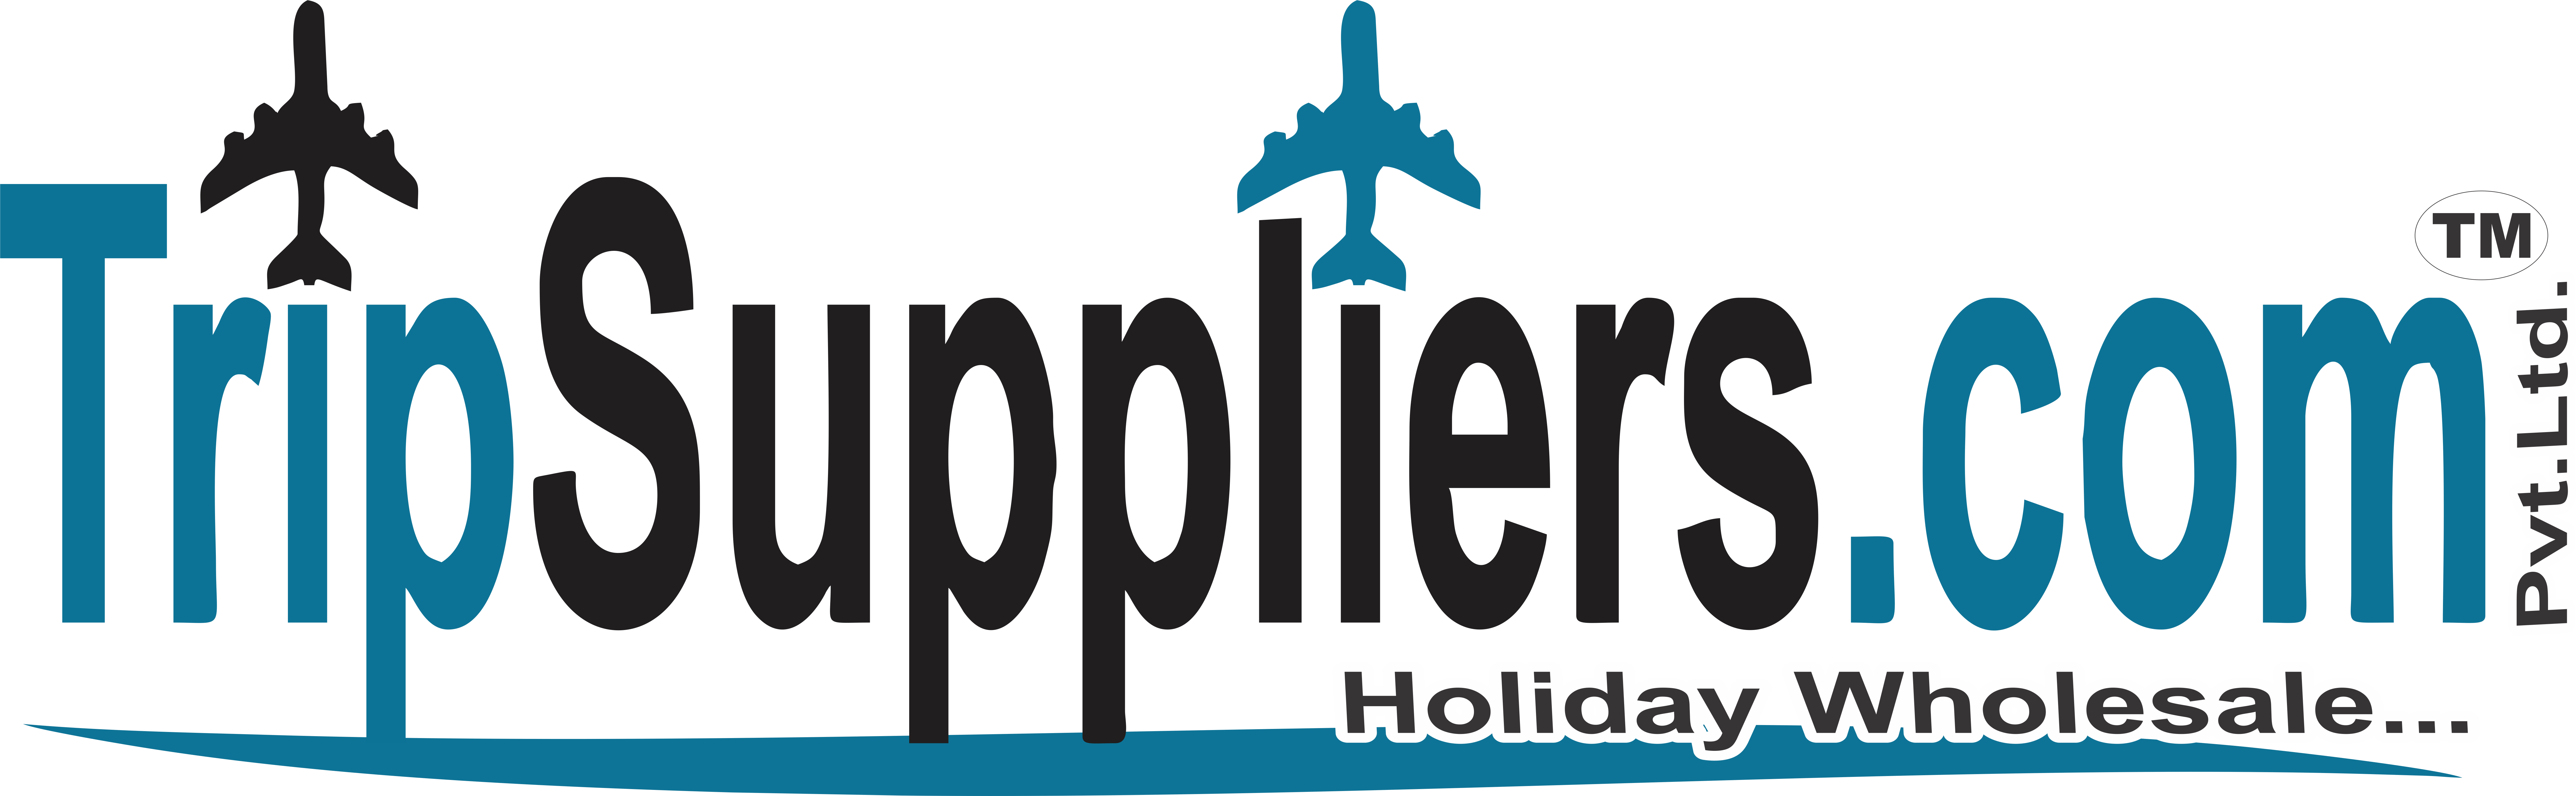 Tripsuppliers